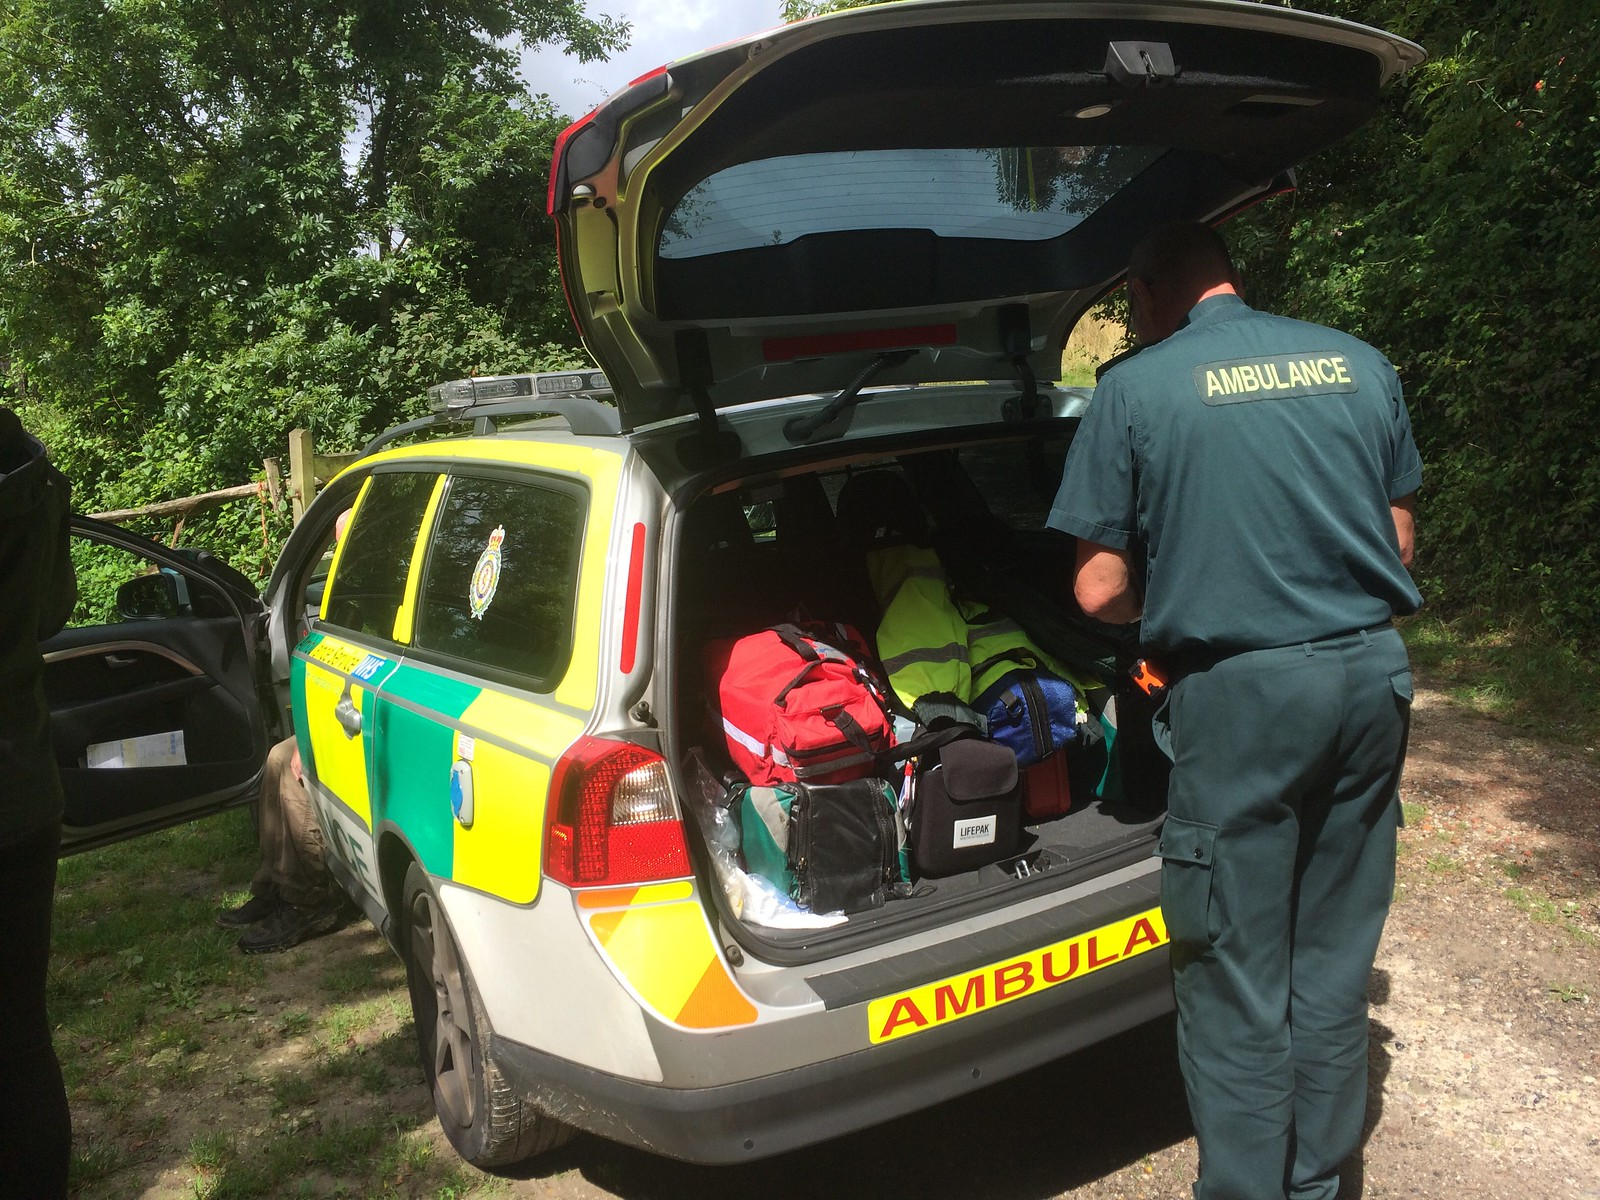 August 23, 2015: Hassocks to Devil's Dyke Ambulance paramedic attending to injured rambler